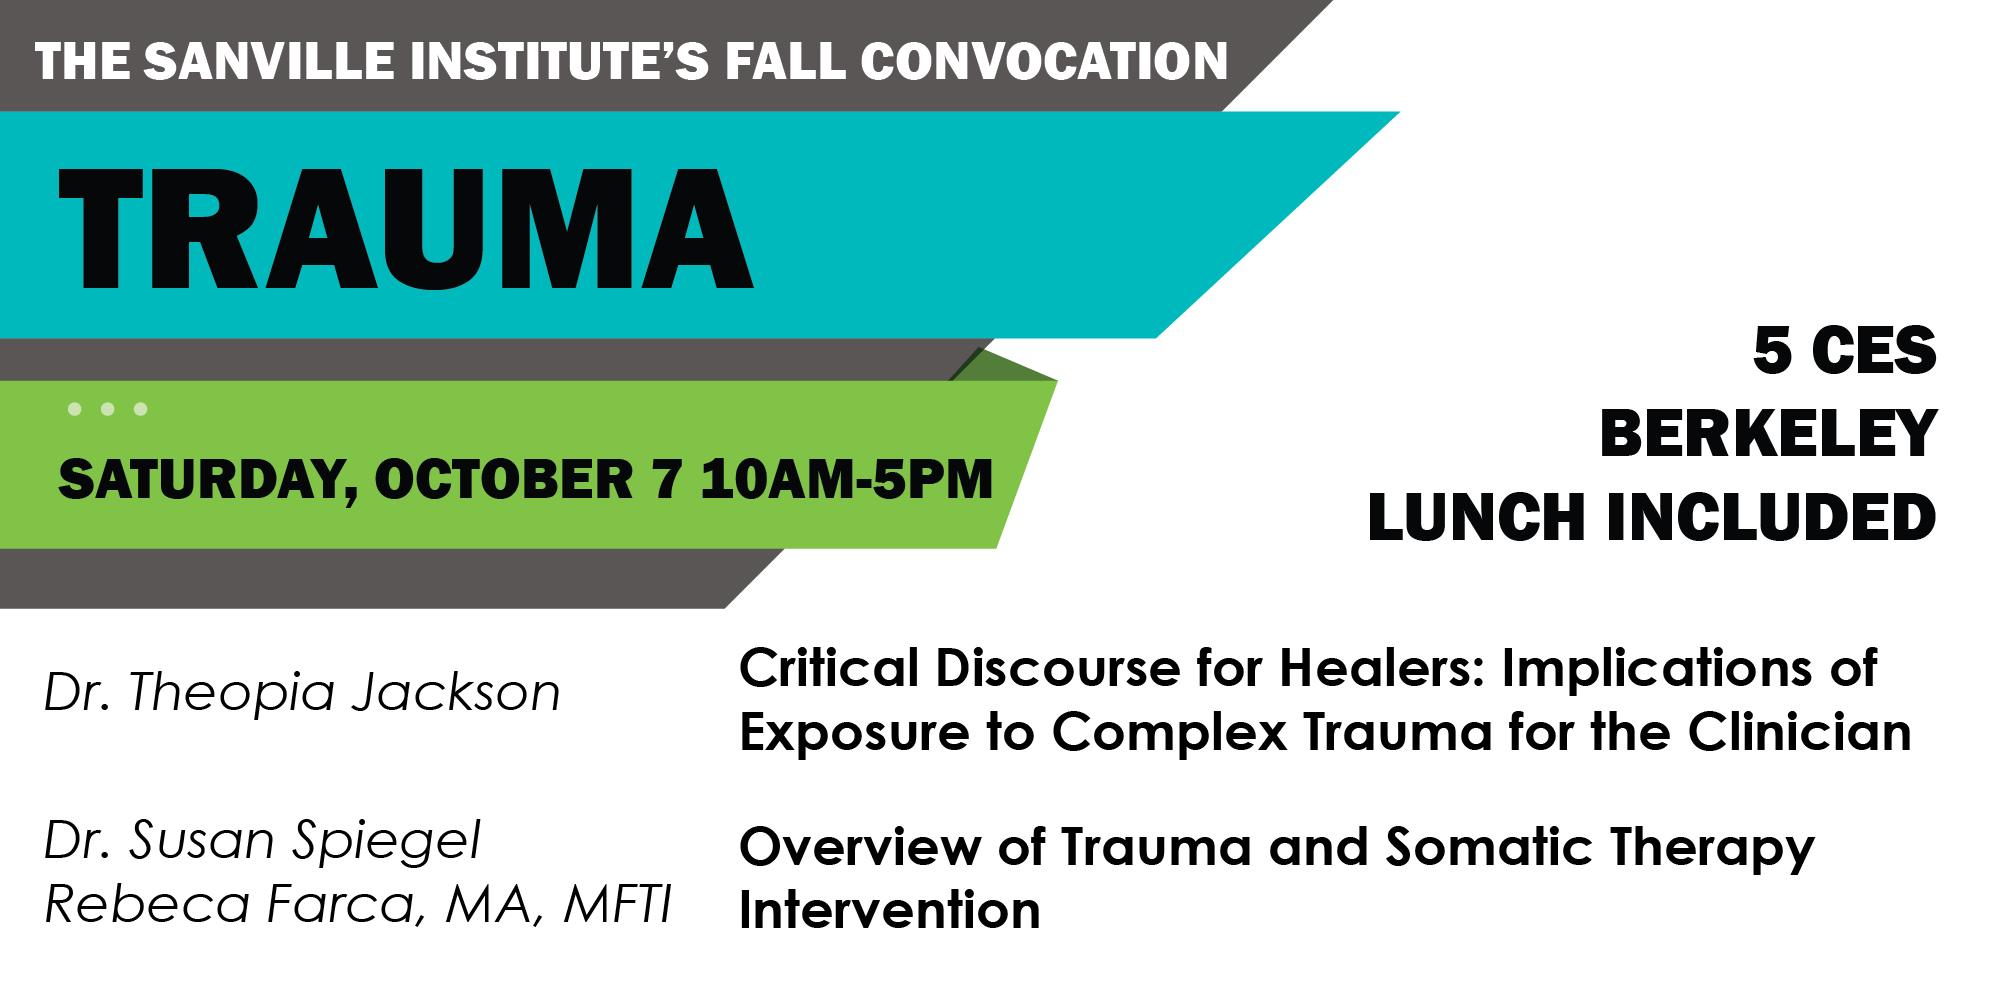 The-Sanville-Institute-Fall-Convocation---Trauma-10.7.17